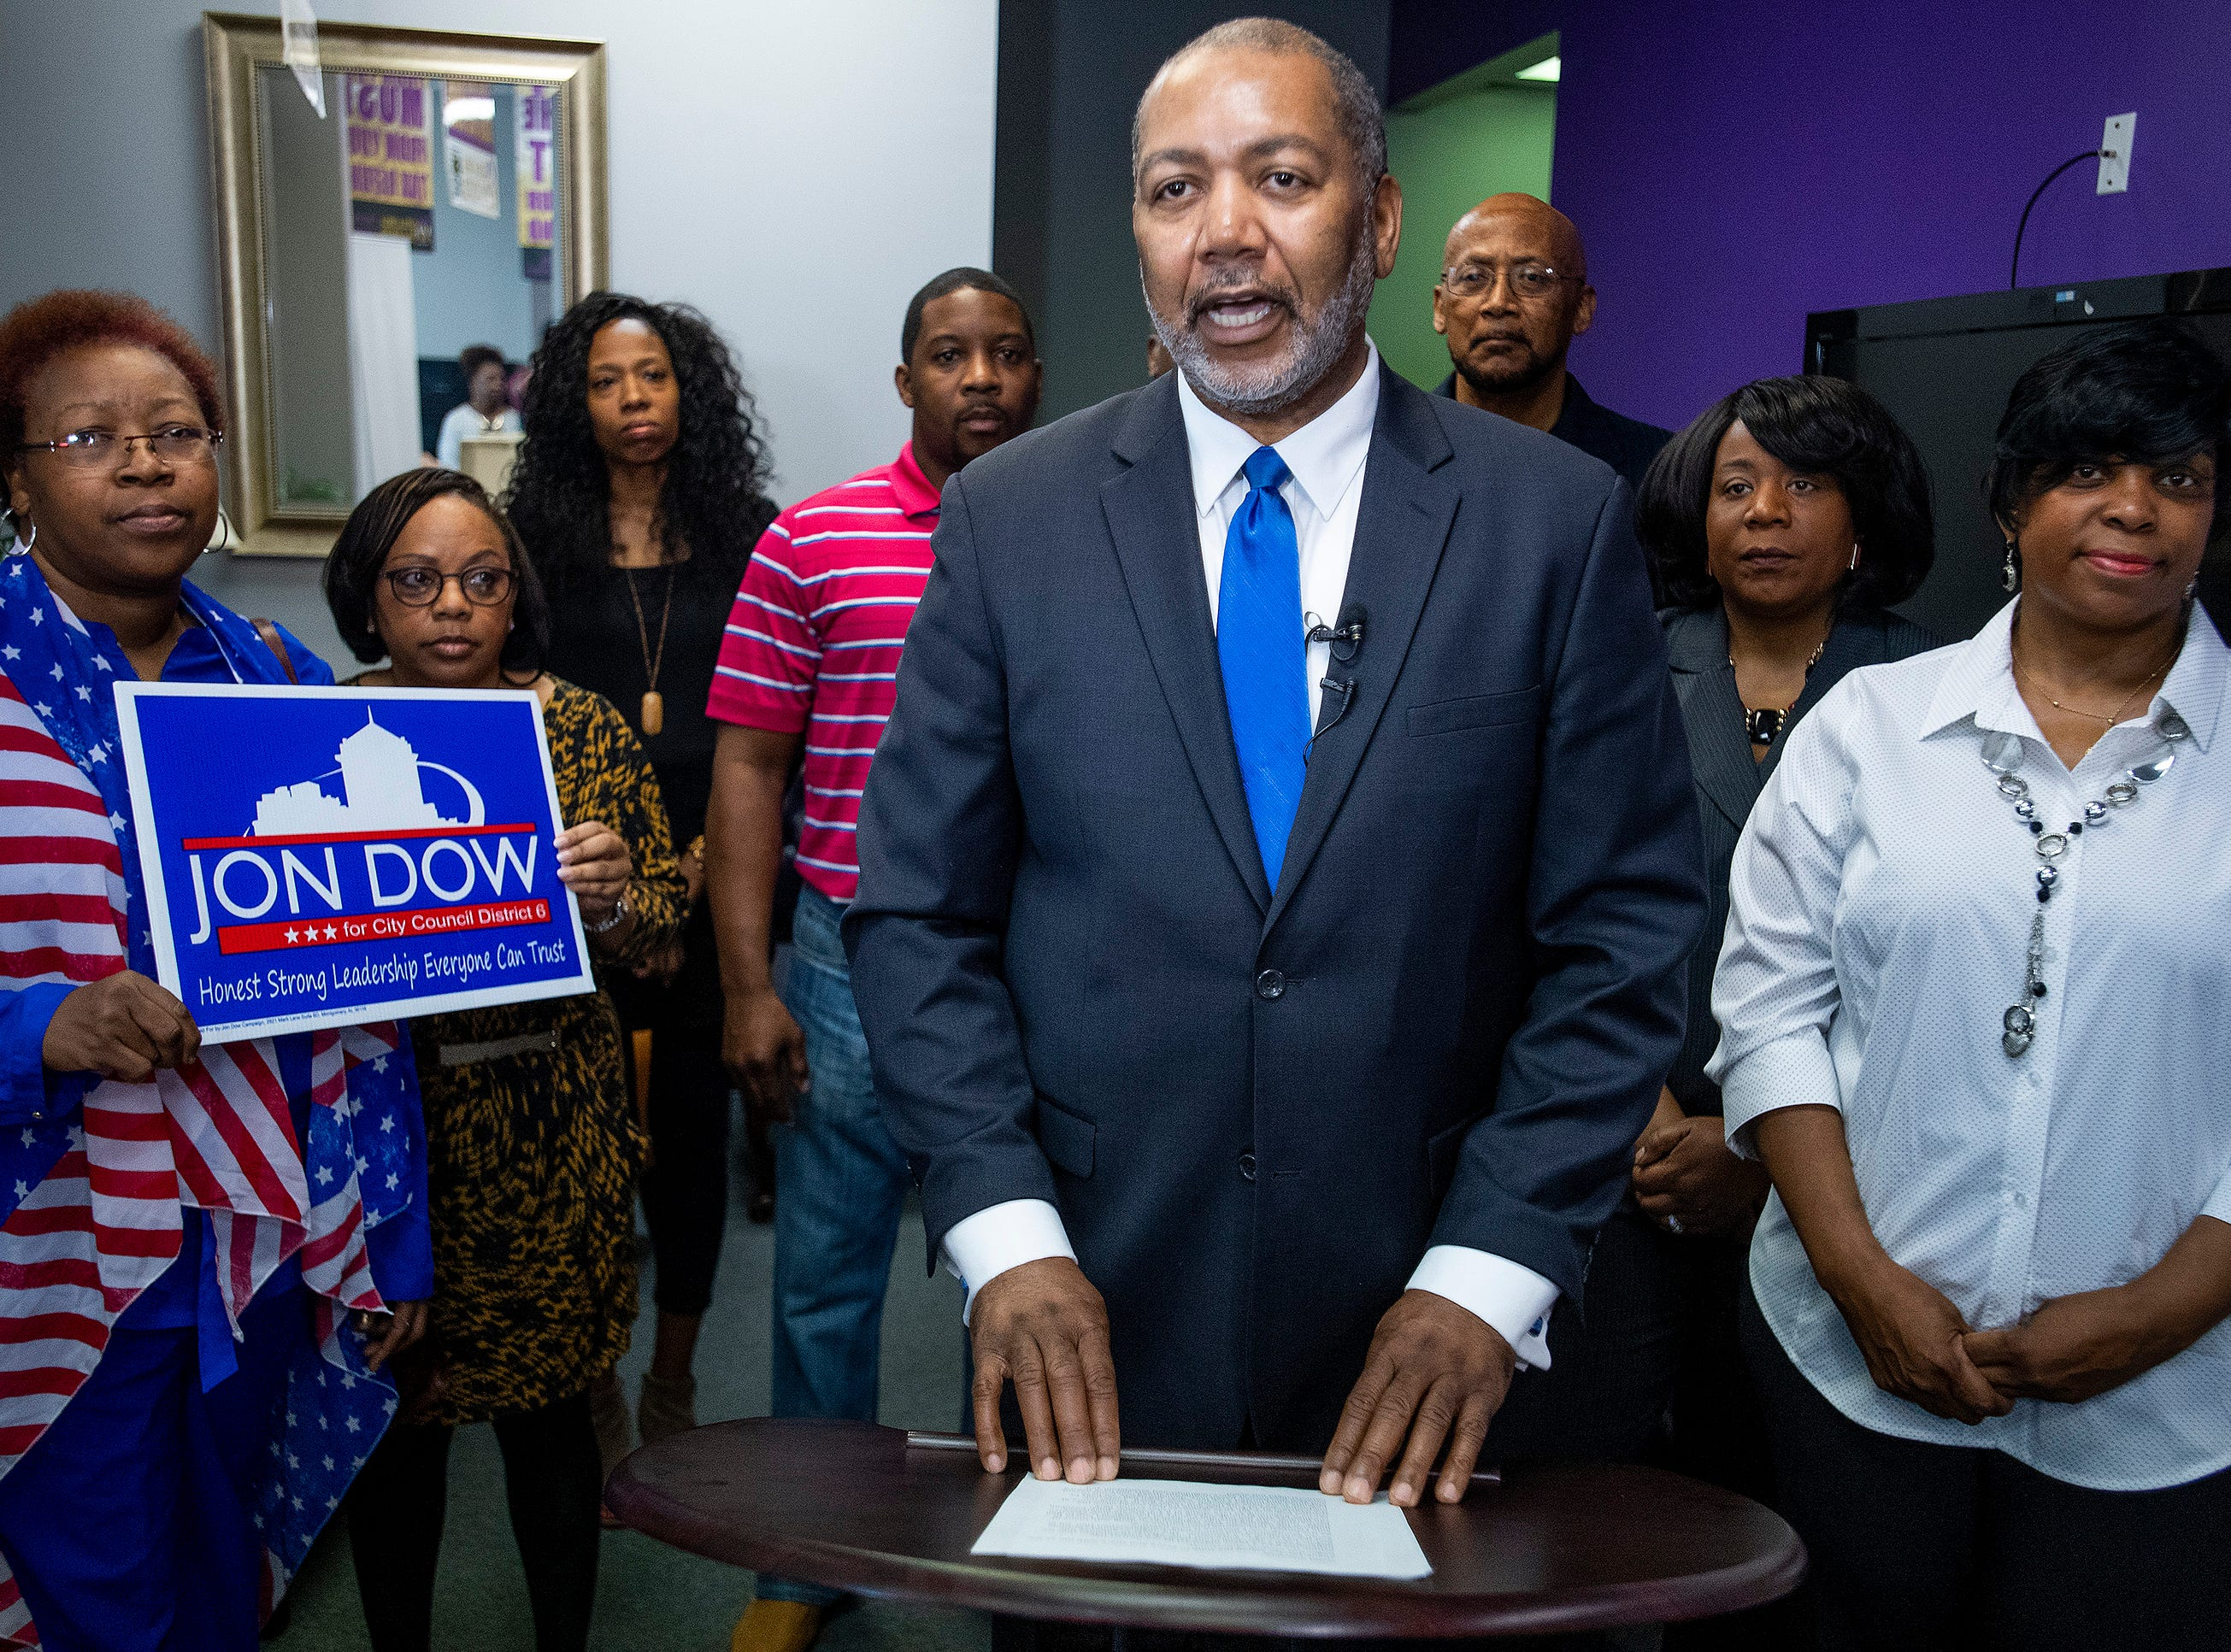 Jon Dow, backers by supporters, announces that he is running to take back his city council seat in Montgomery, Ala., on Thursday February 7, 2019.